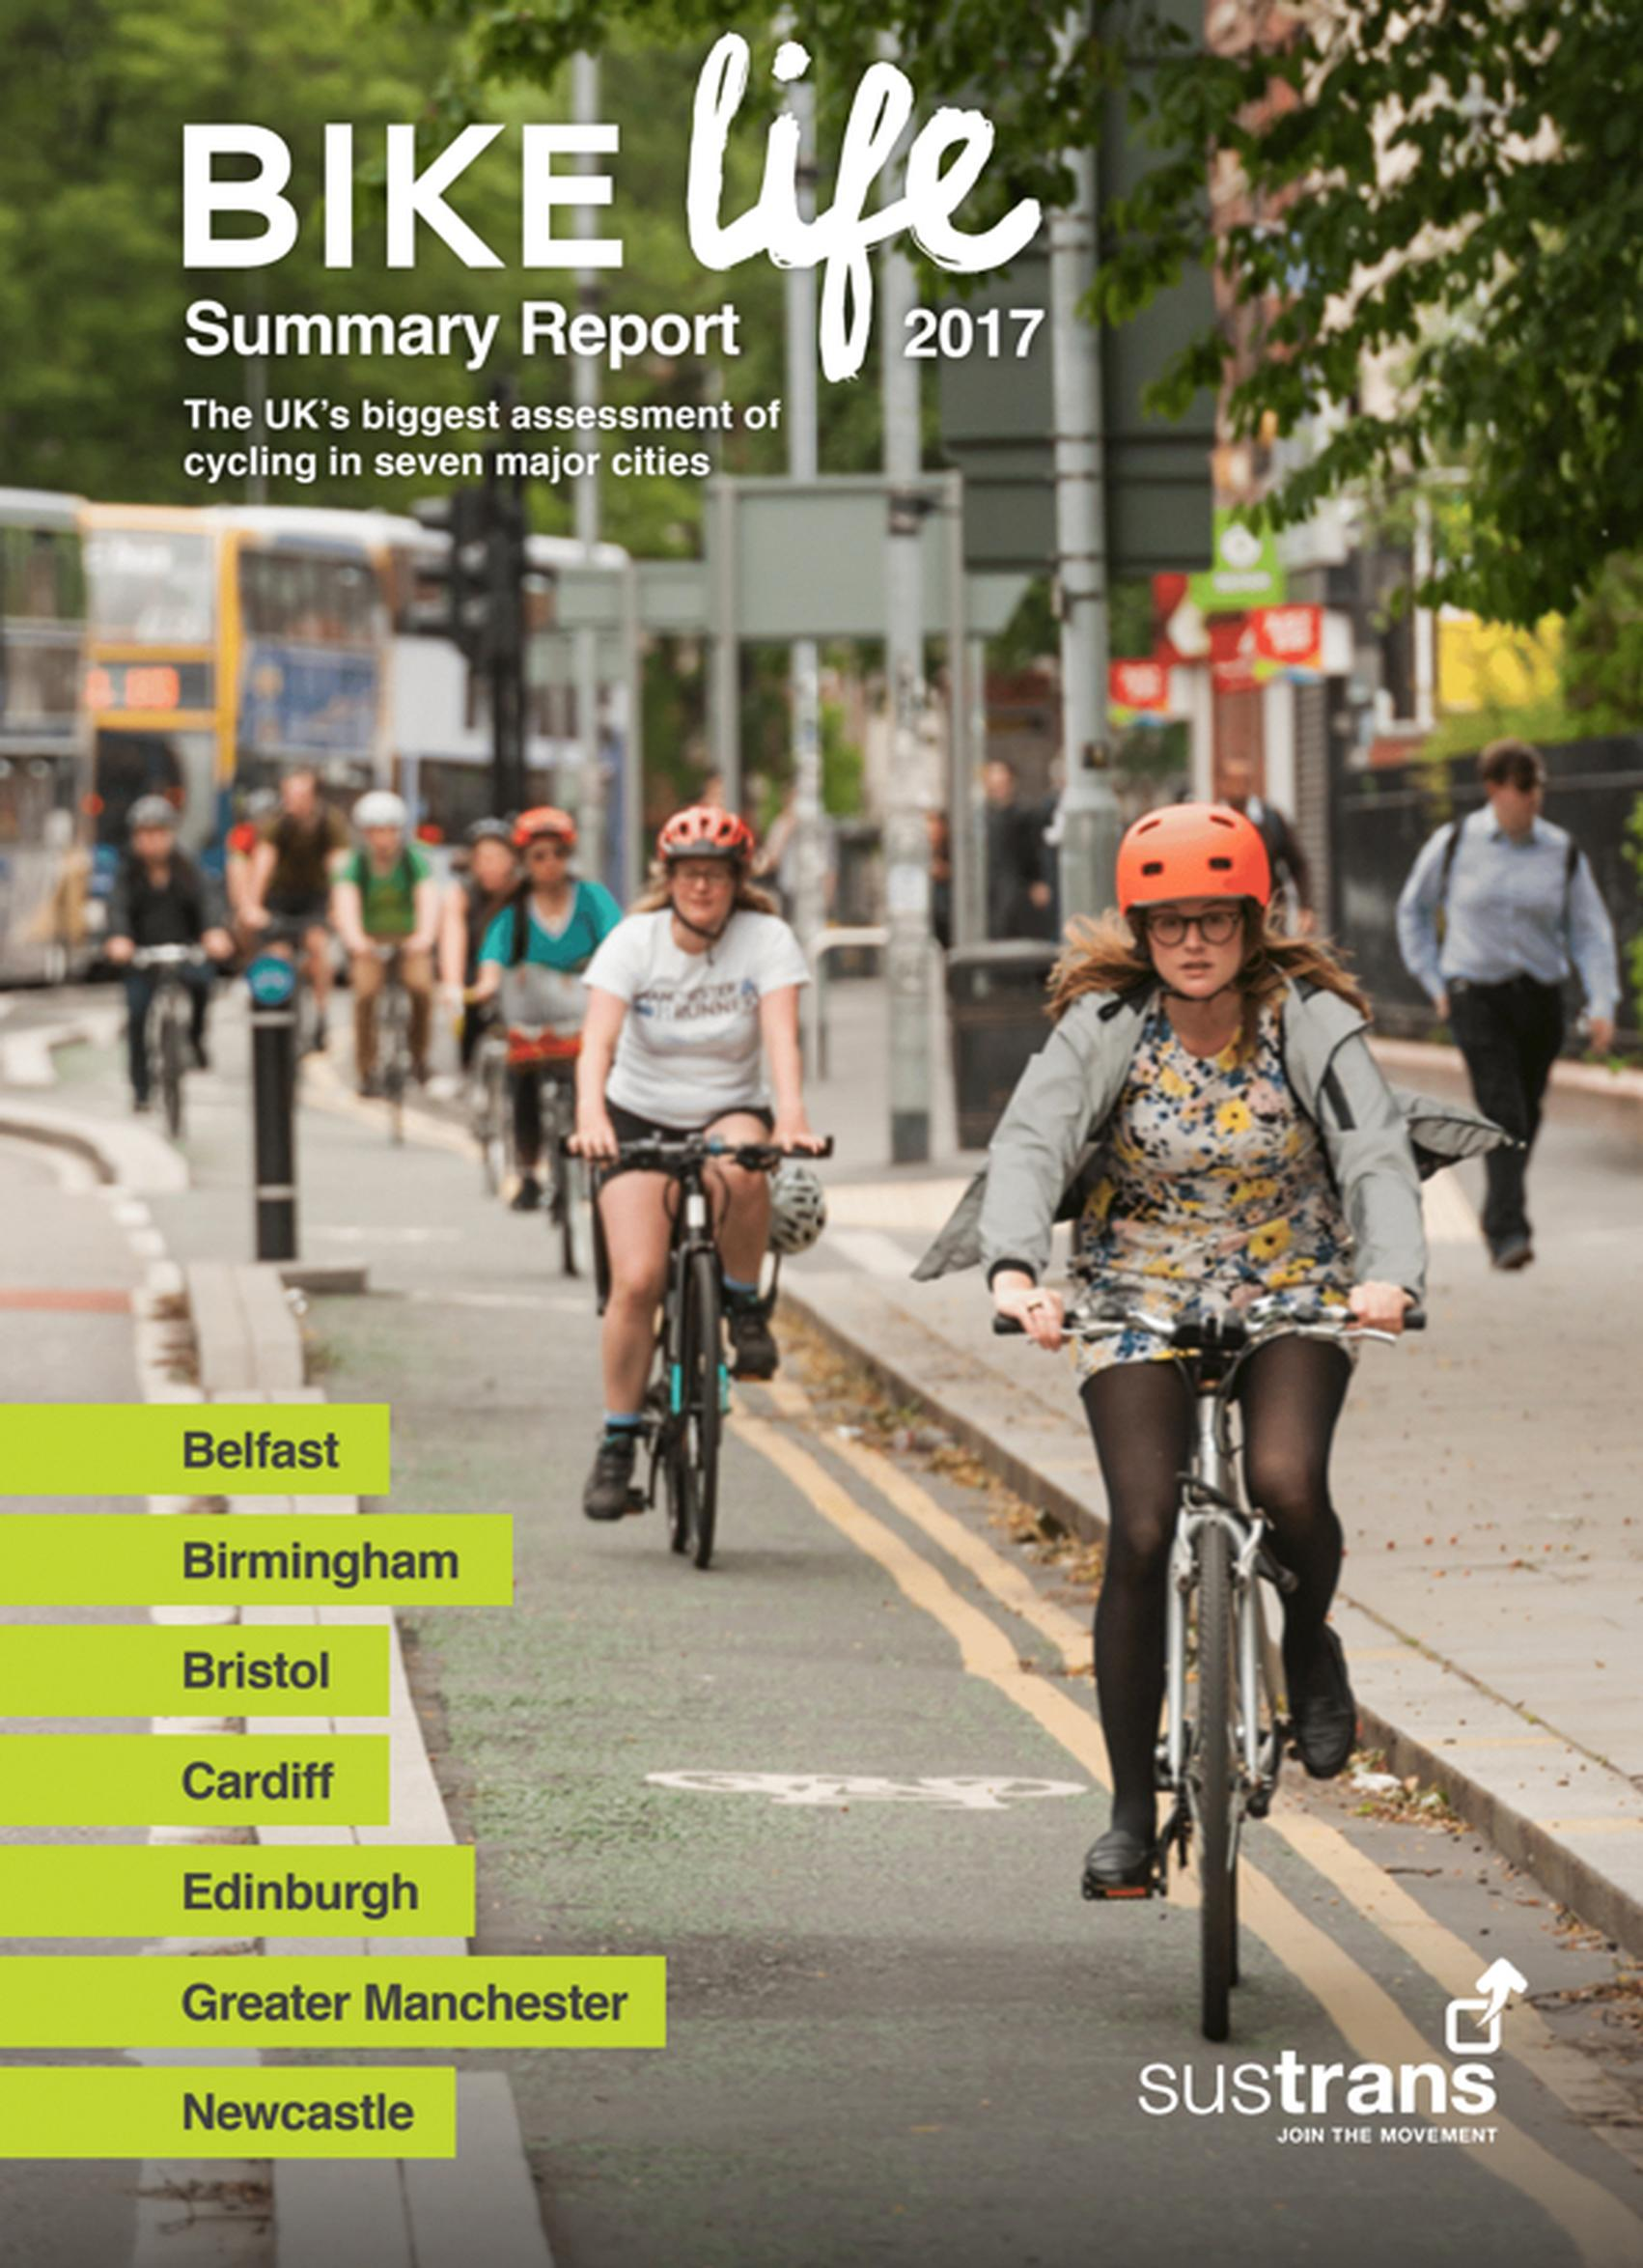 Strong support for more investment in cycling, Bike Life reports show